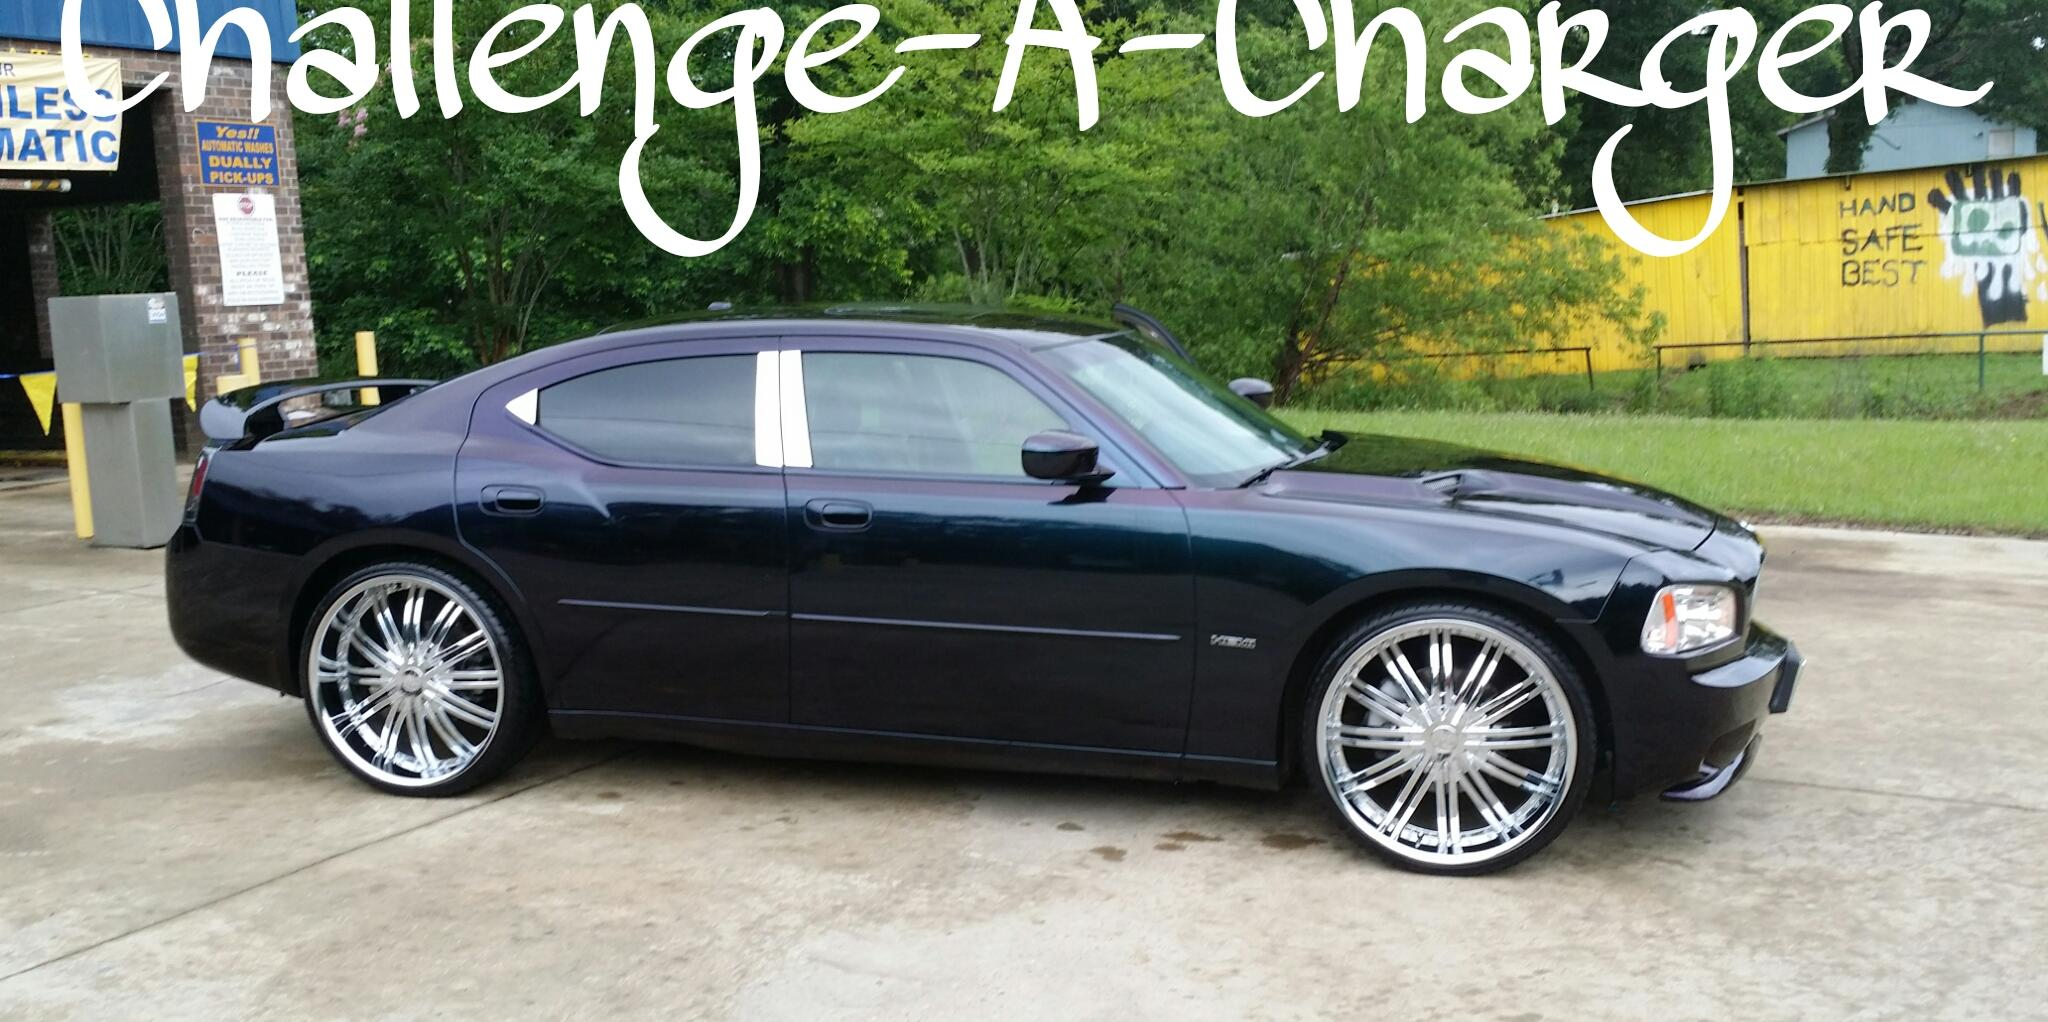 Troublechargedup's 2007 Dodge Charger